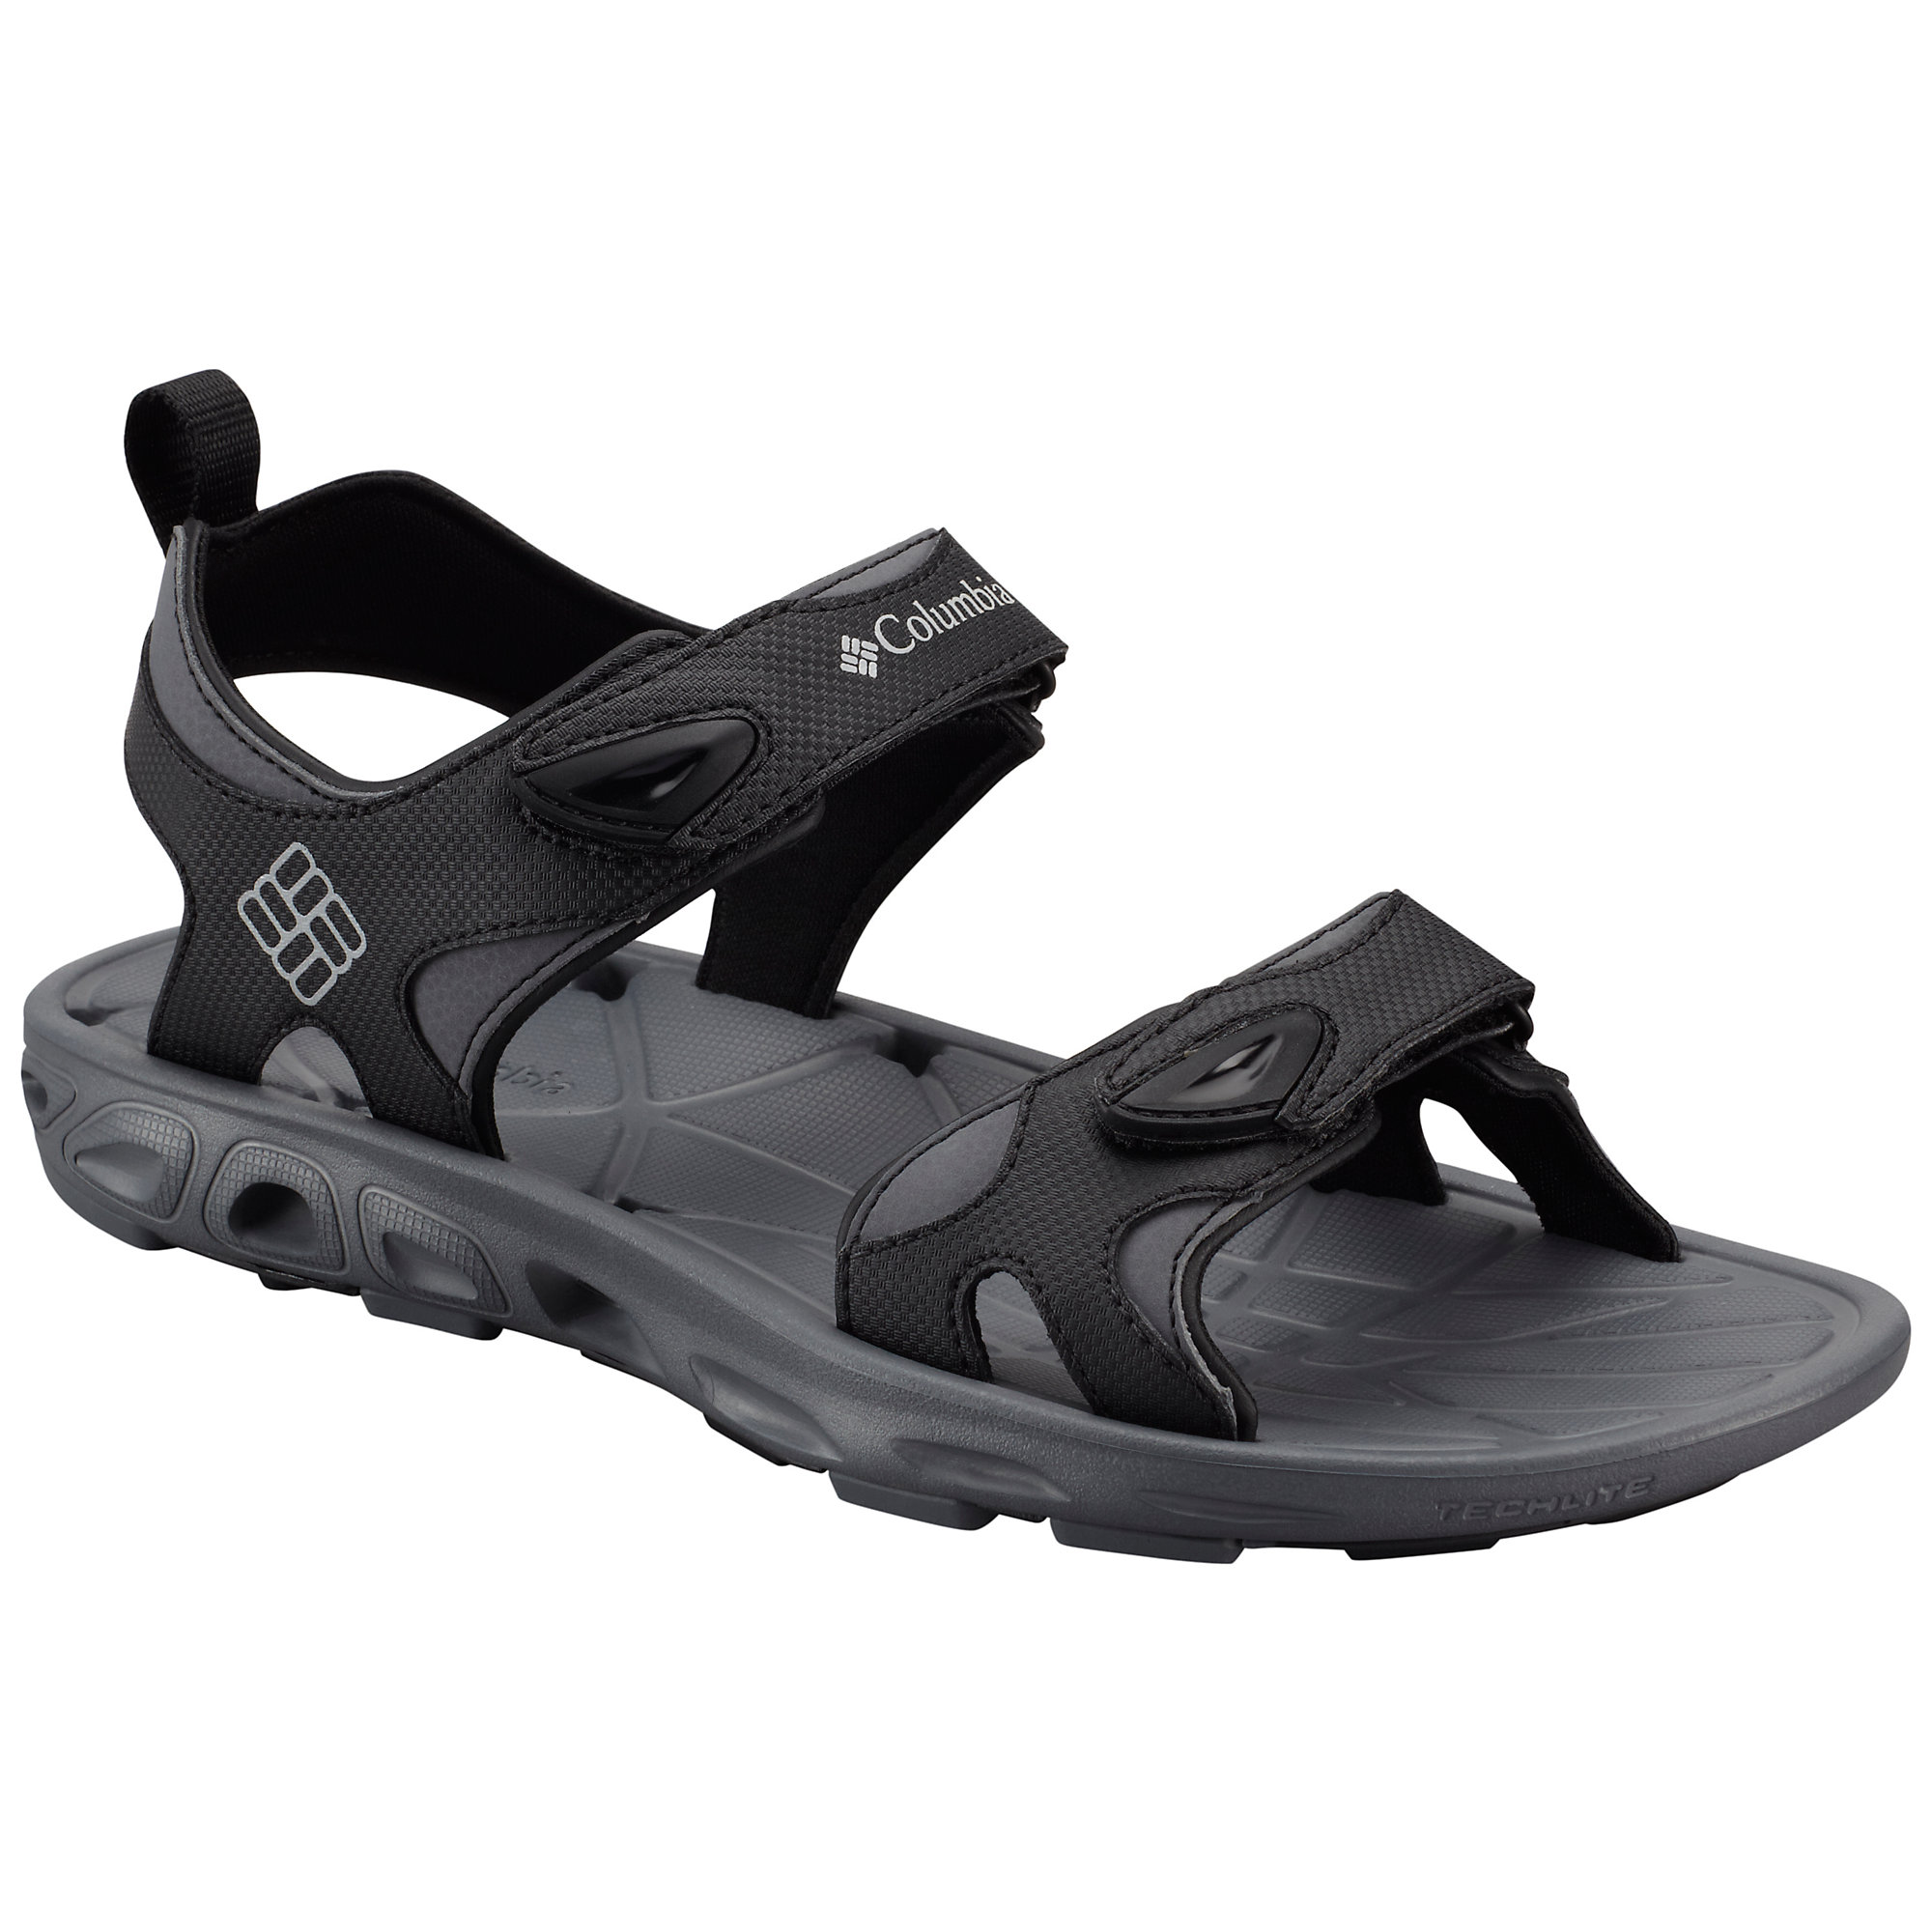 Reef® | Sandals & Shoes - Shop Reef.com